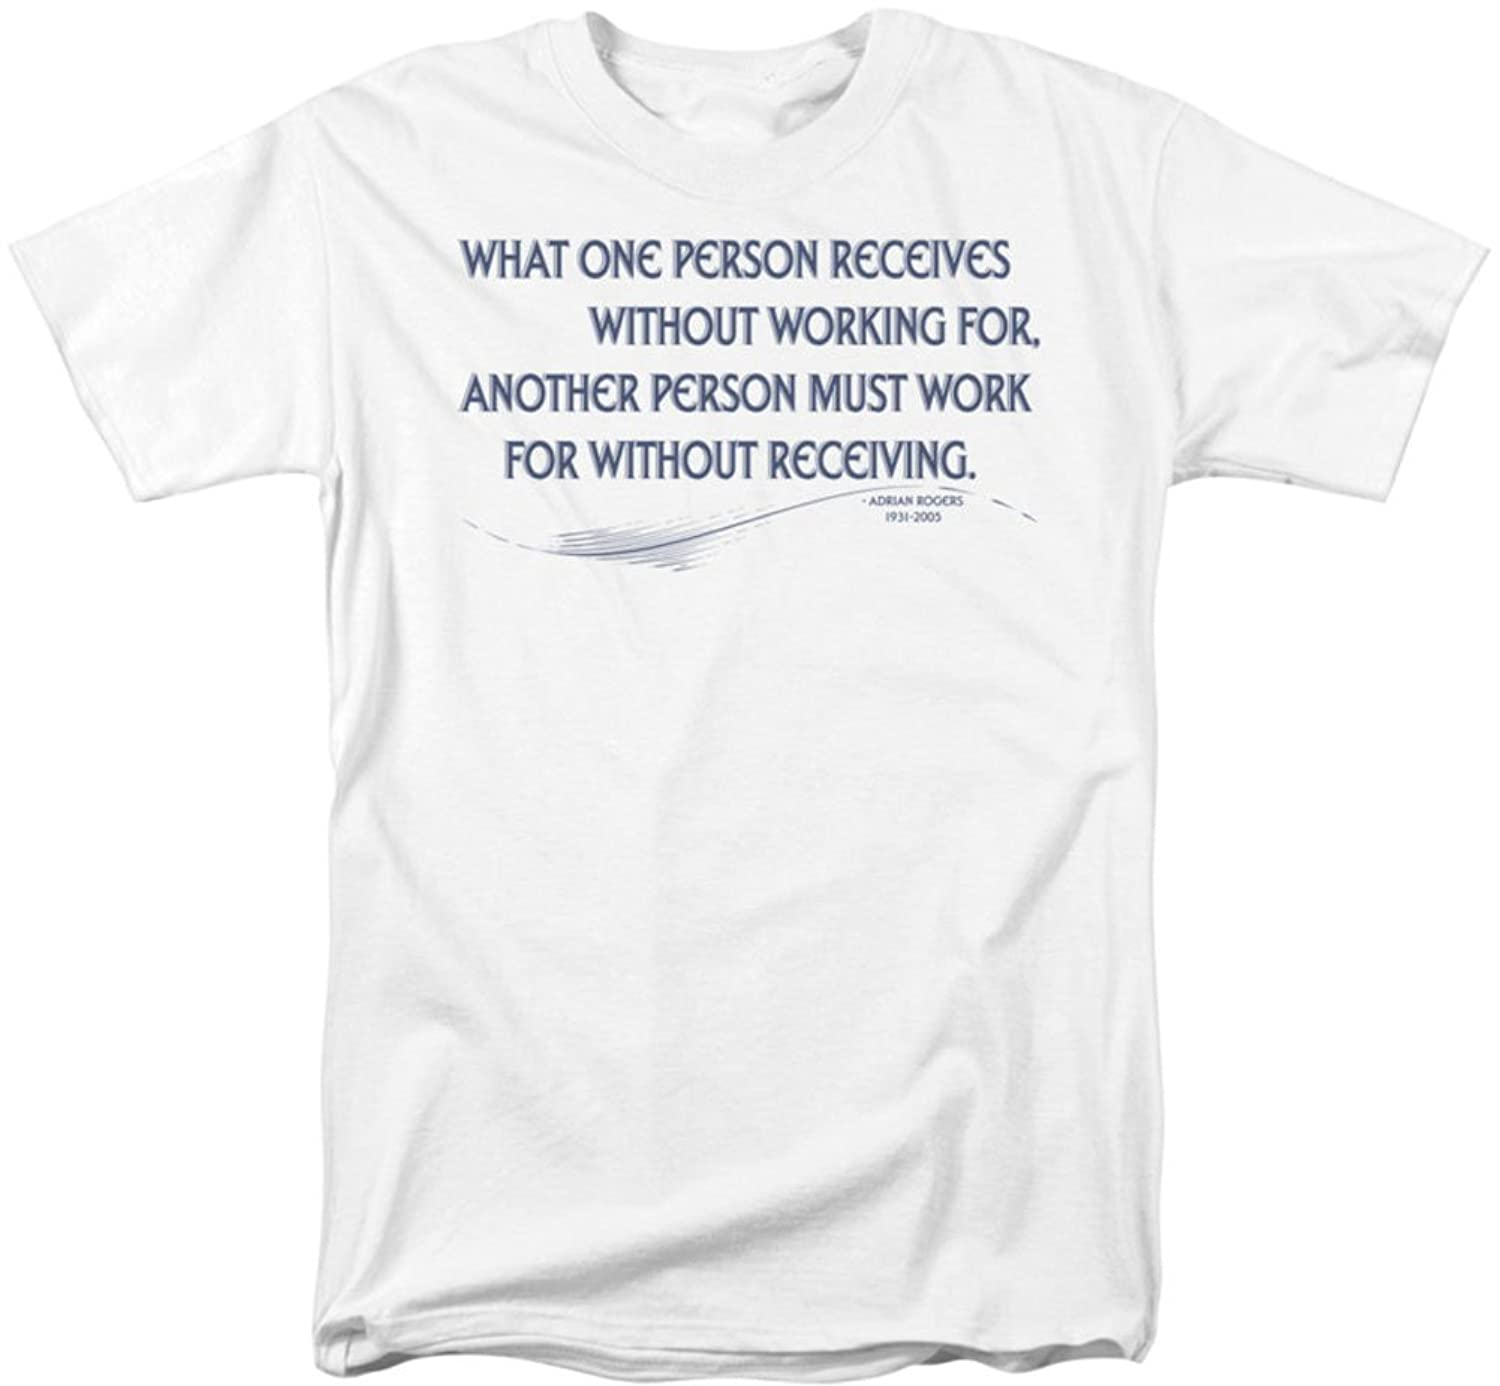 Funny Tees - Mens One Person Receives T-Shirt